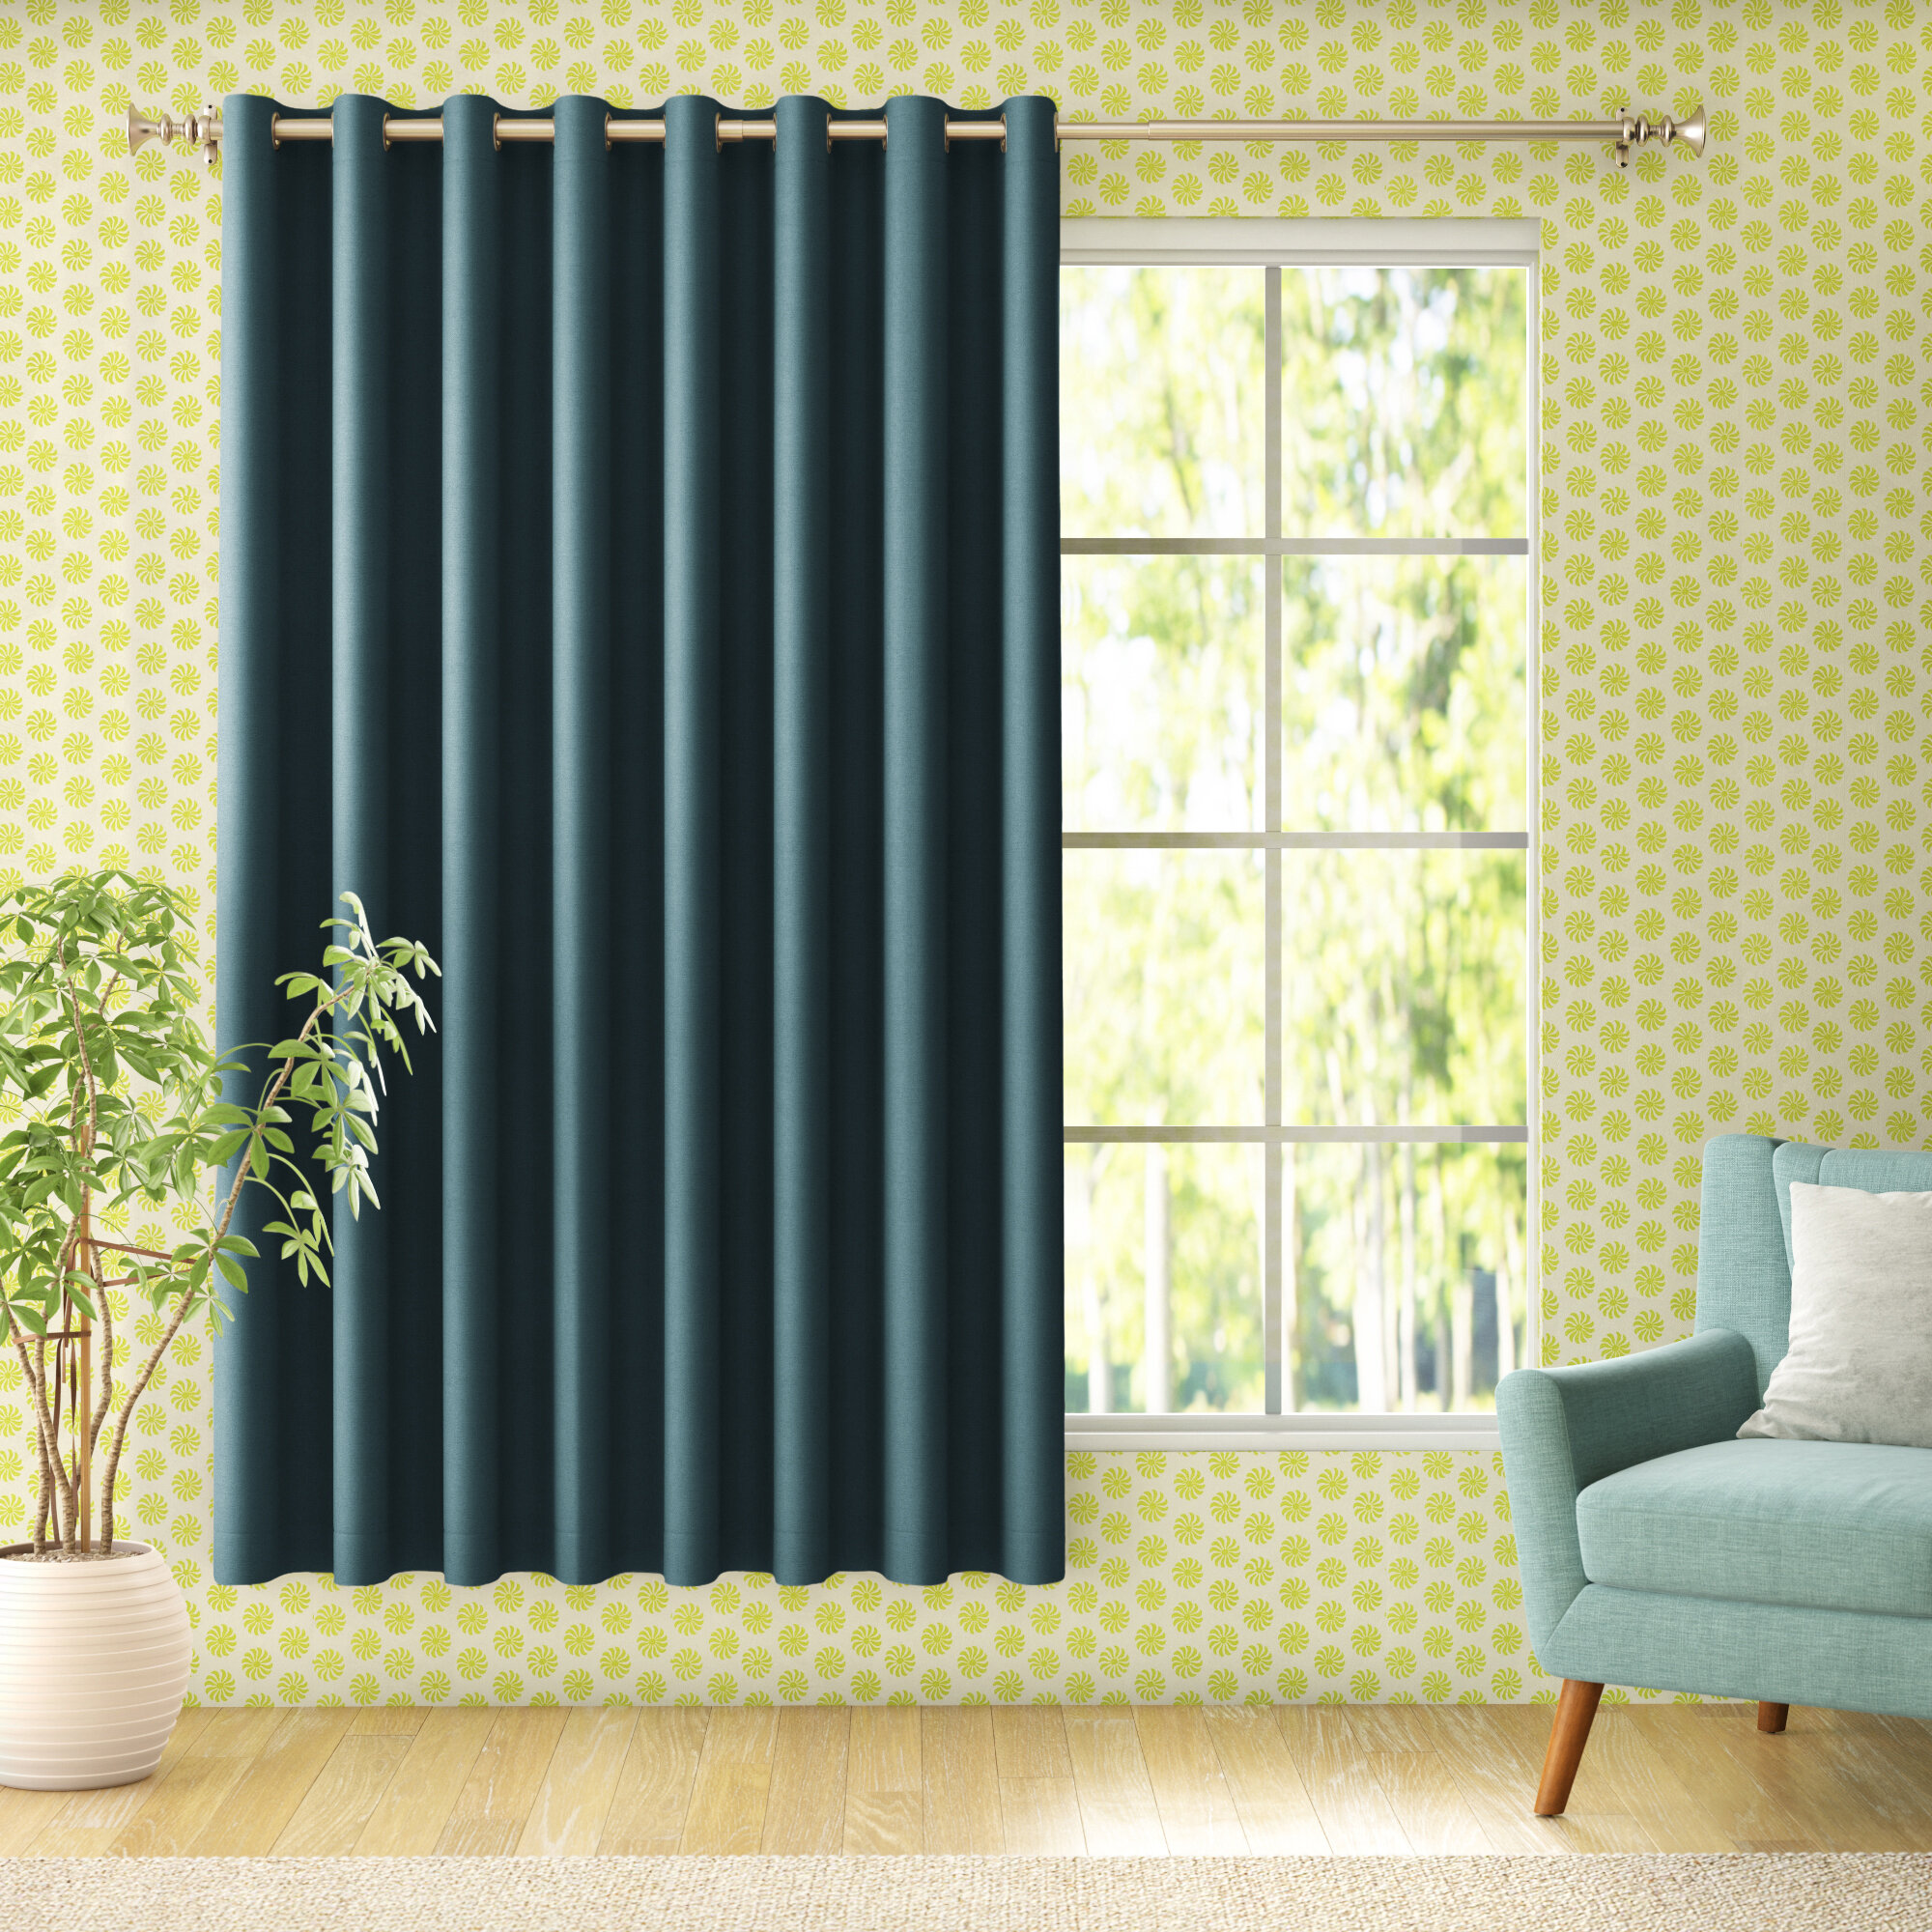 Living Room Teal Curtains Drapes You Ll Love In 2021 Wayfair